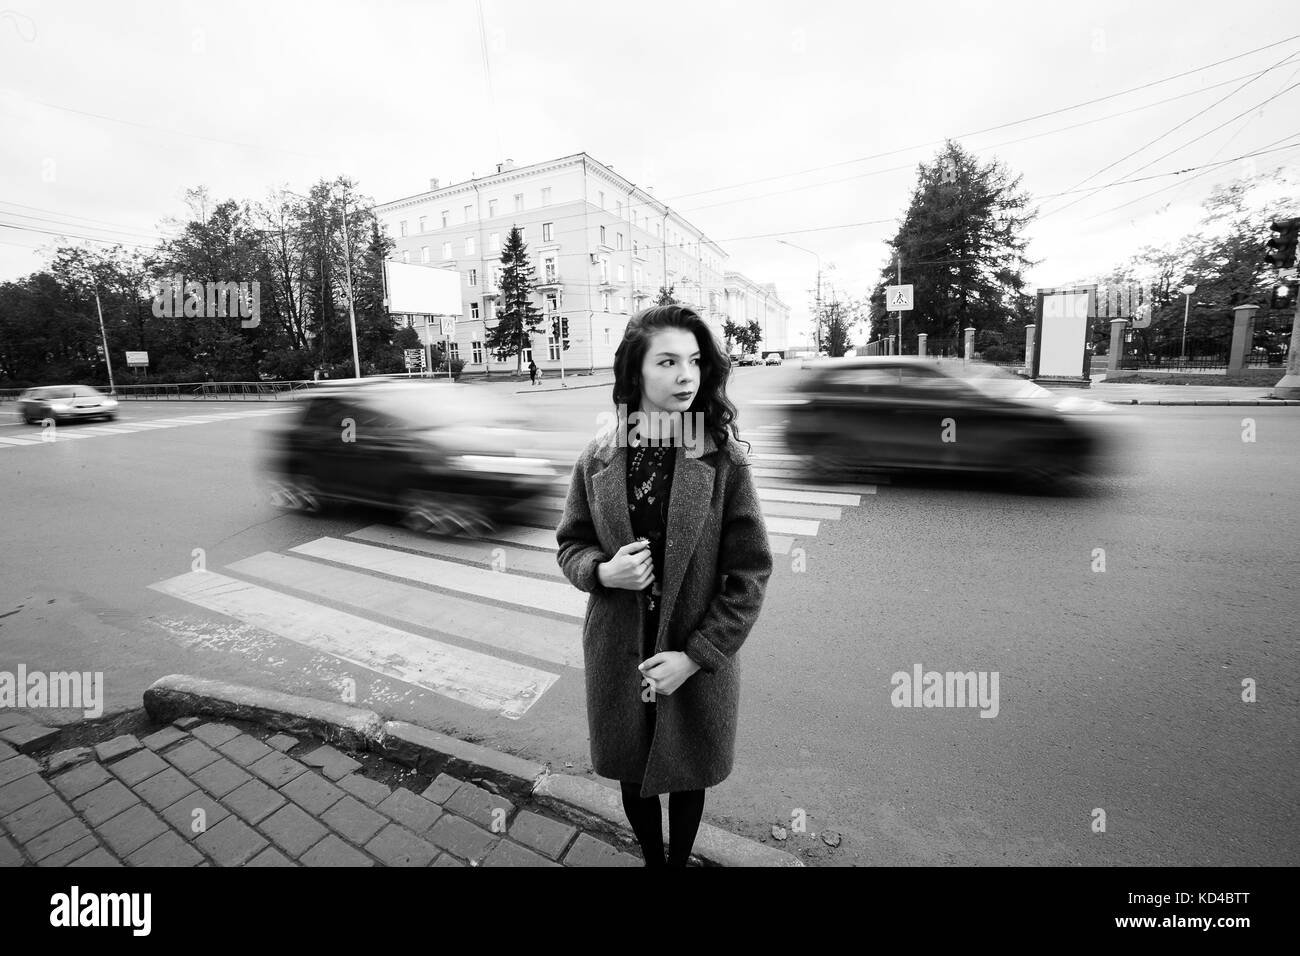 One teenage girl blue coat standing at the traffic light on city street on a cloudly autumn day with vehicles passing - Stock Image